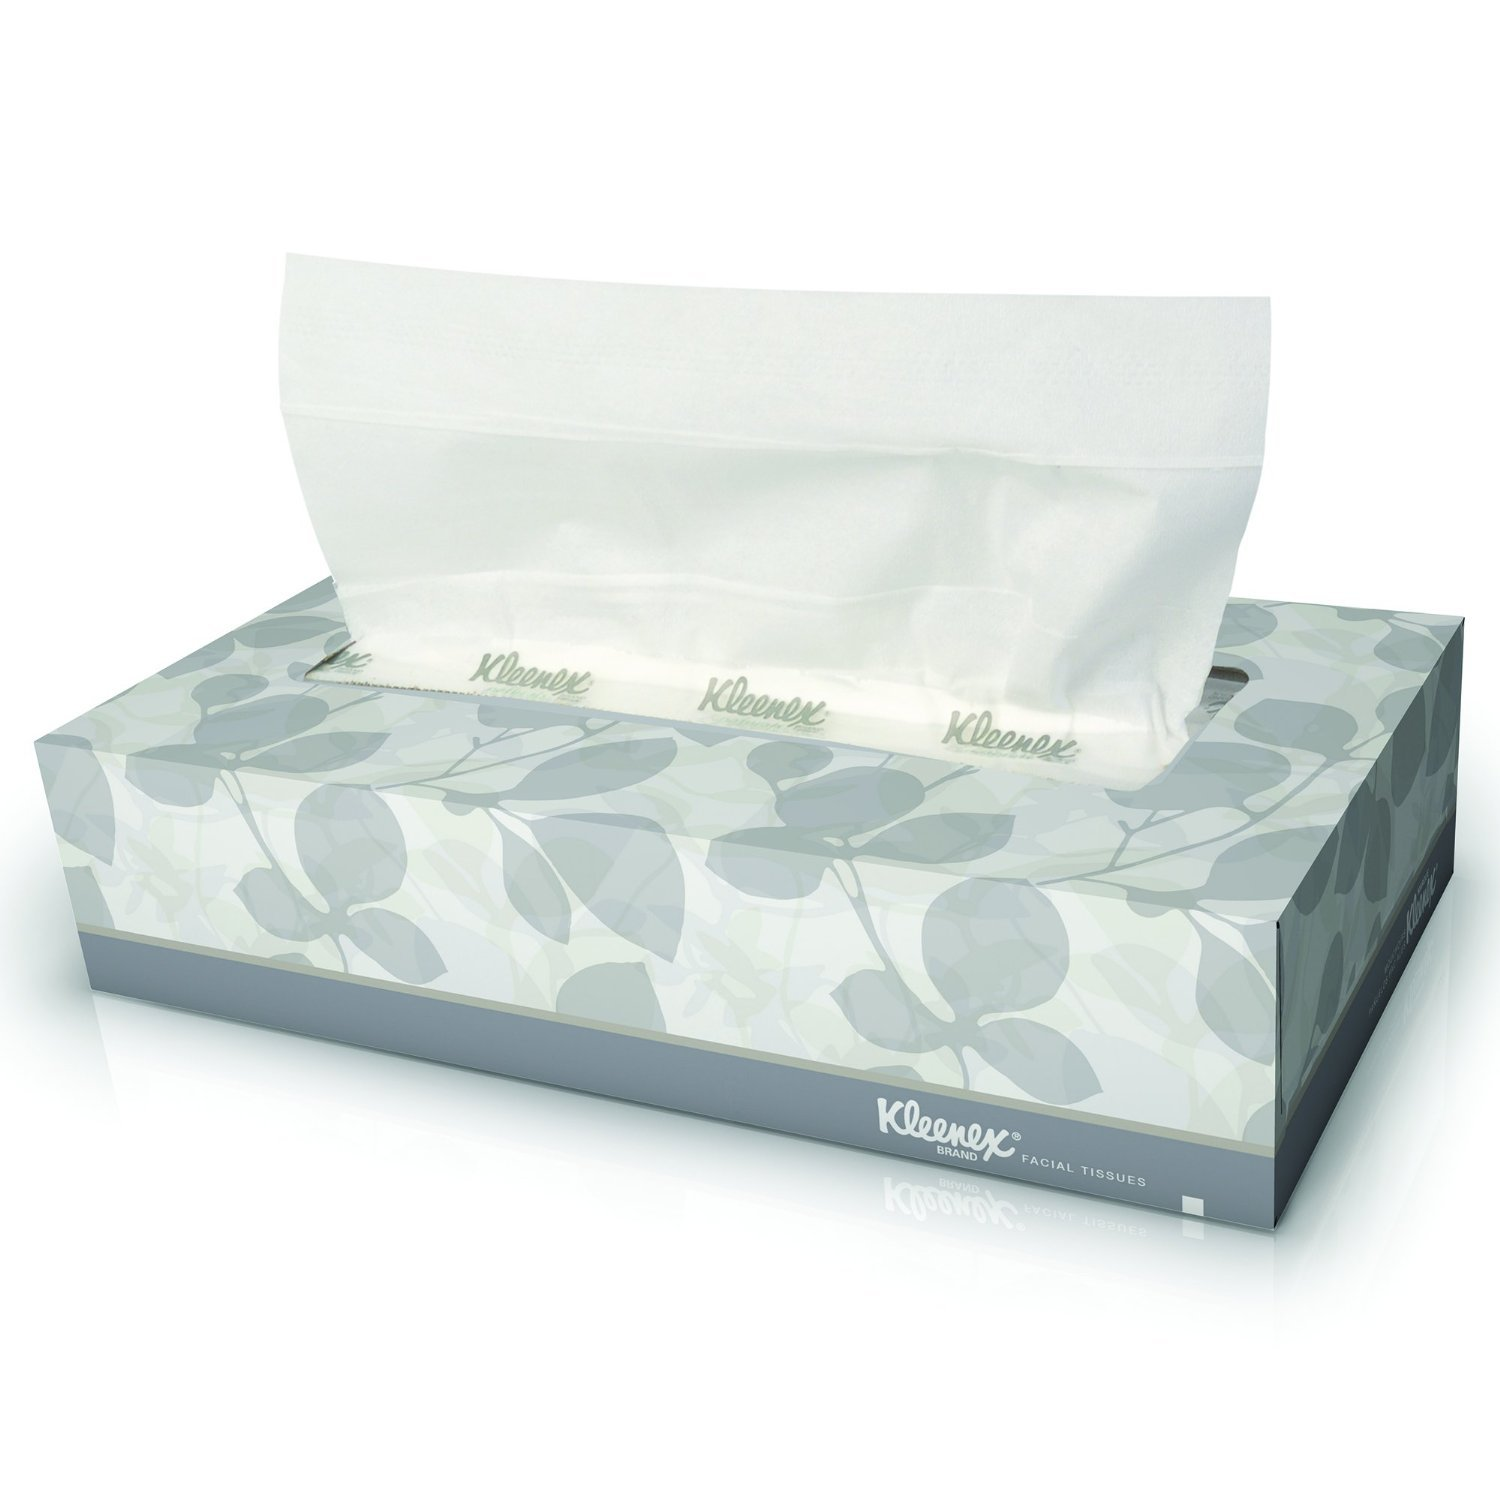 Kleenex Facial Tissue (03076) Wkflhz, Flat Tissue Boxes, (125 Tissues Per Box) - 36 Boxes Total by Kimberly-Clark Professional